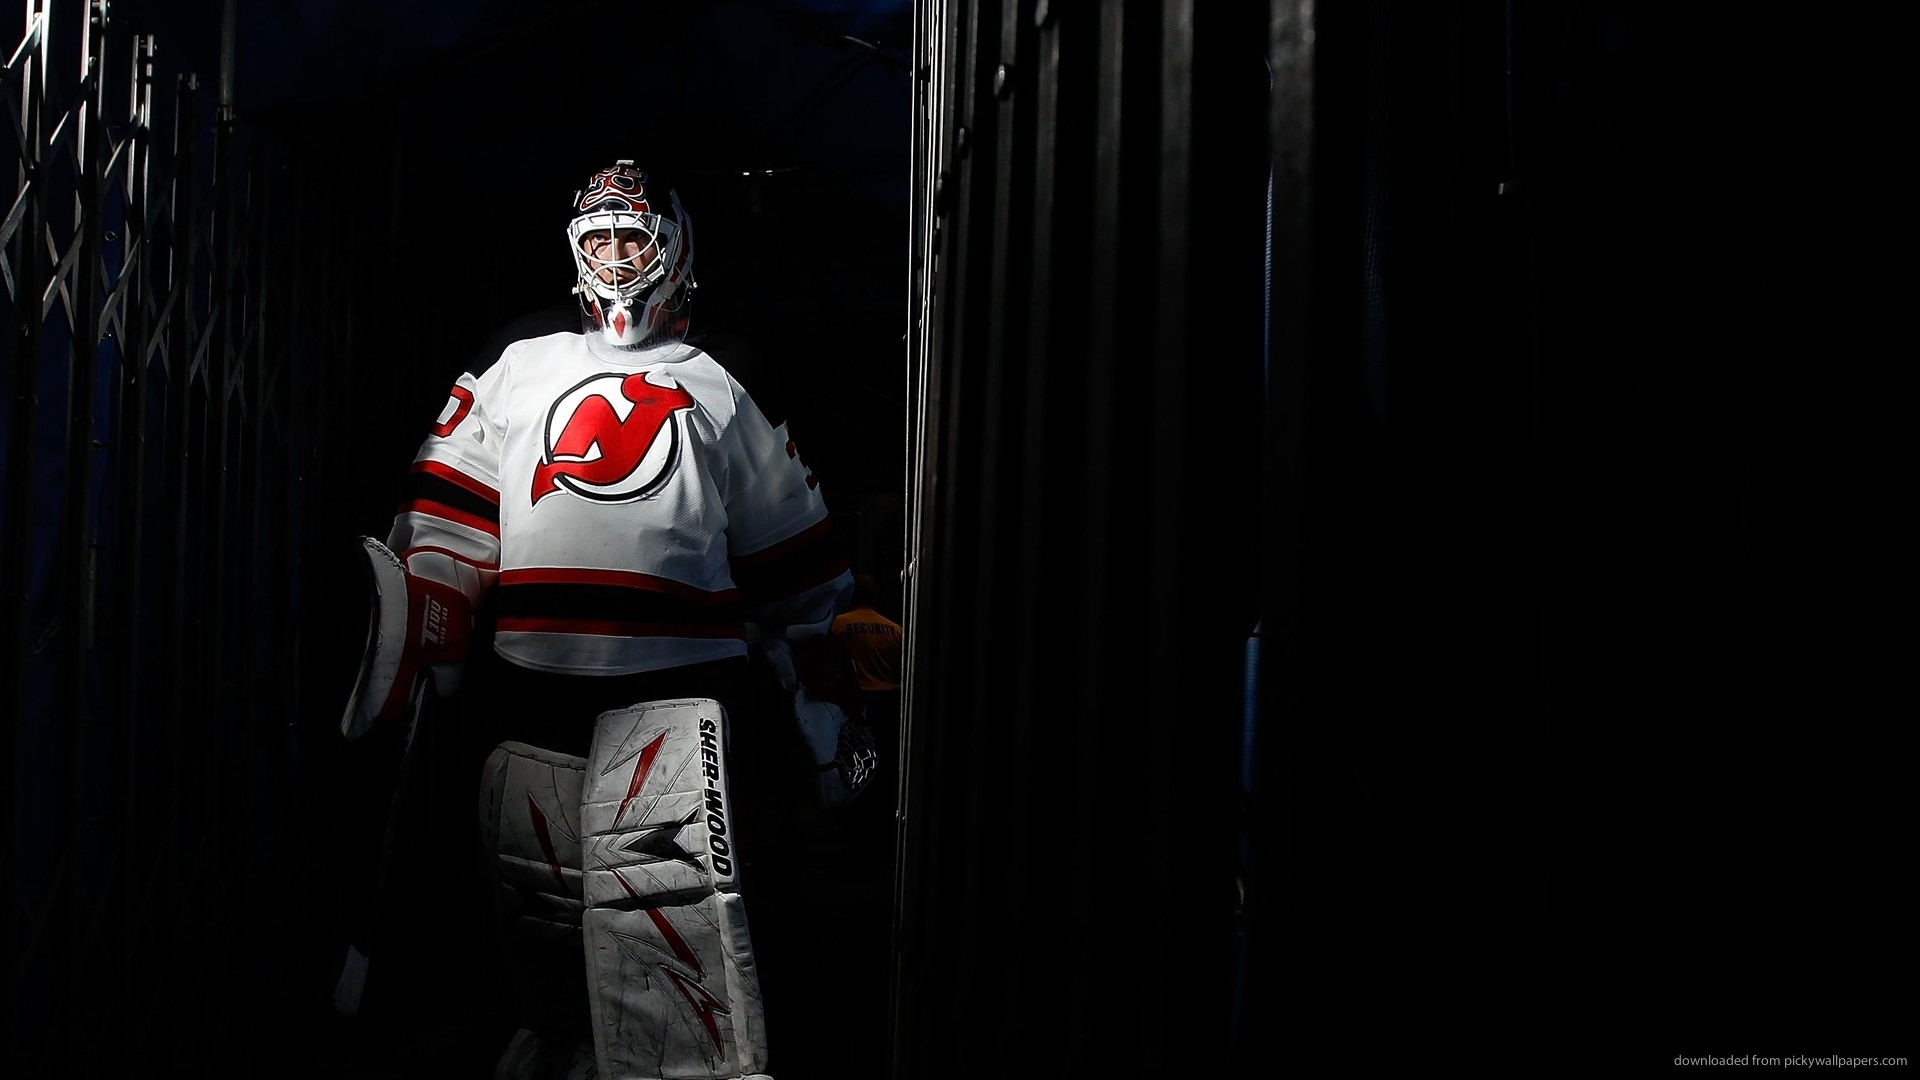 1920x1080 New Jersey Devils Goalkeeper picture